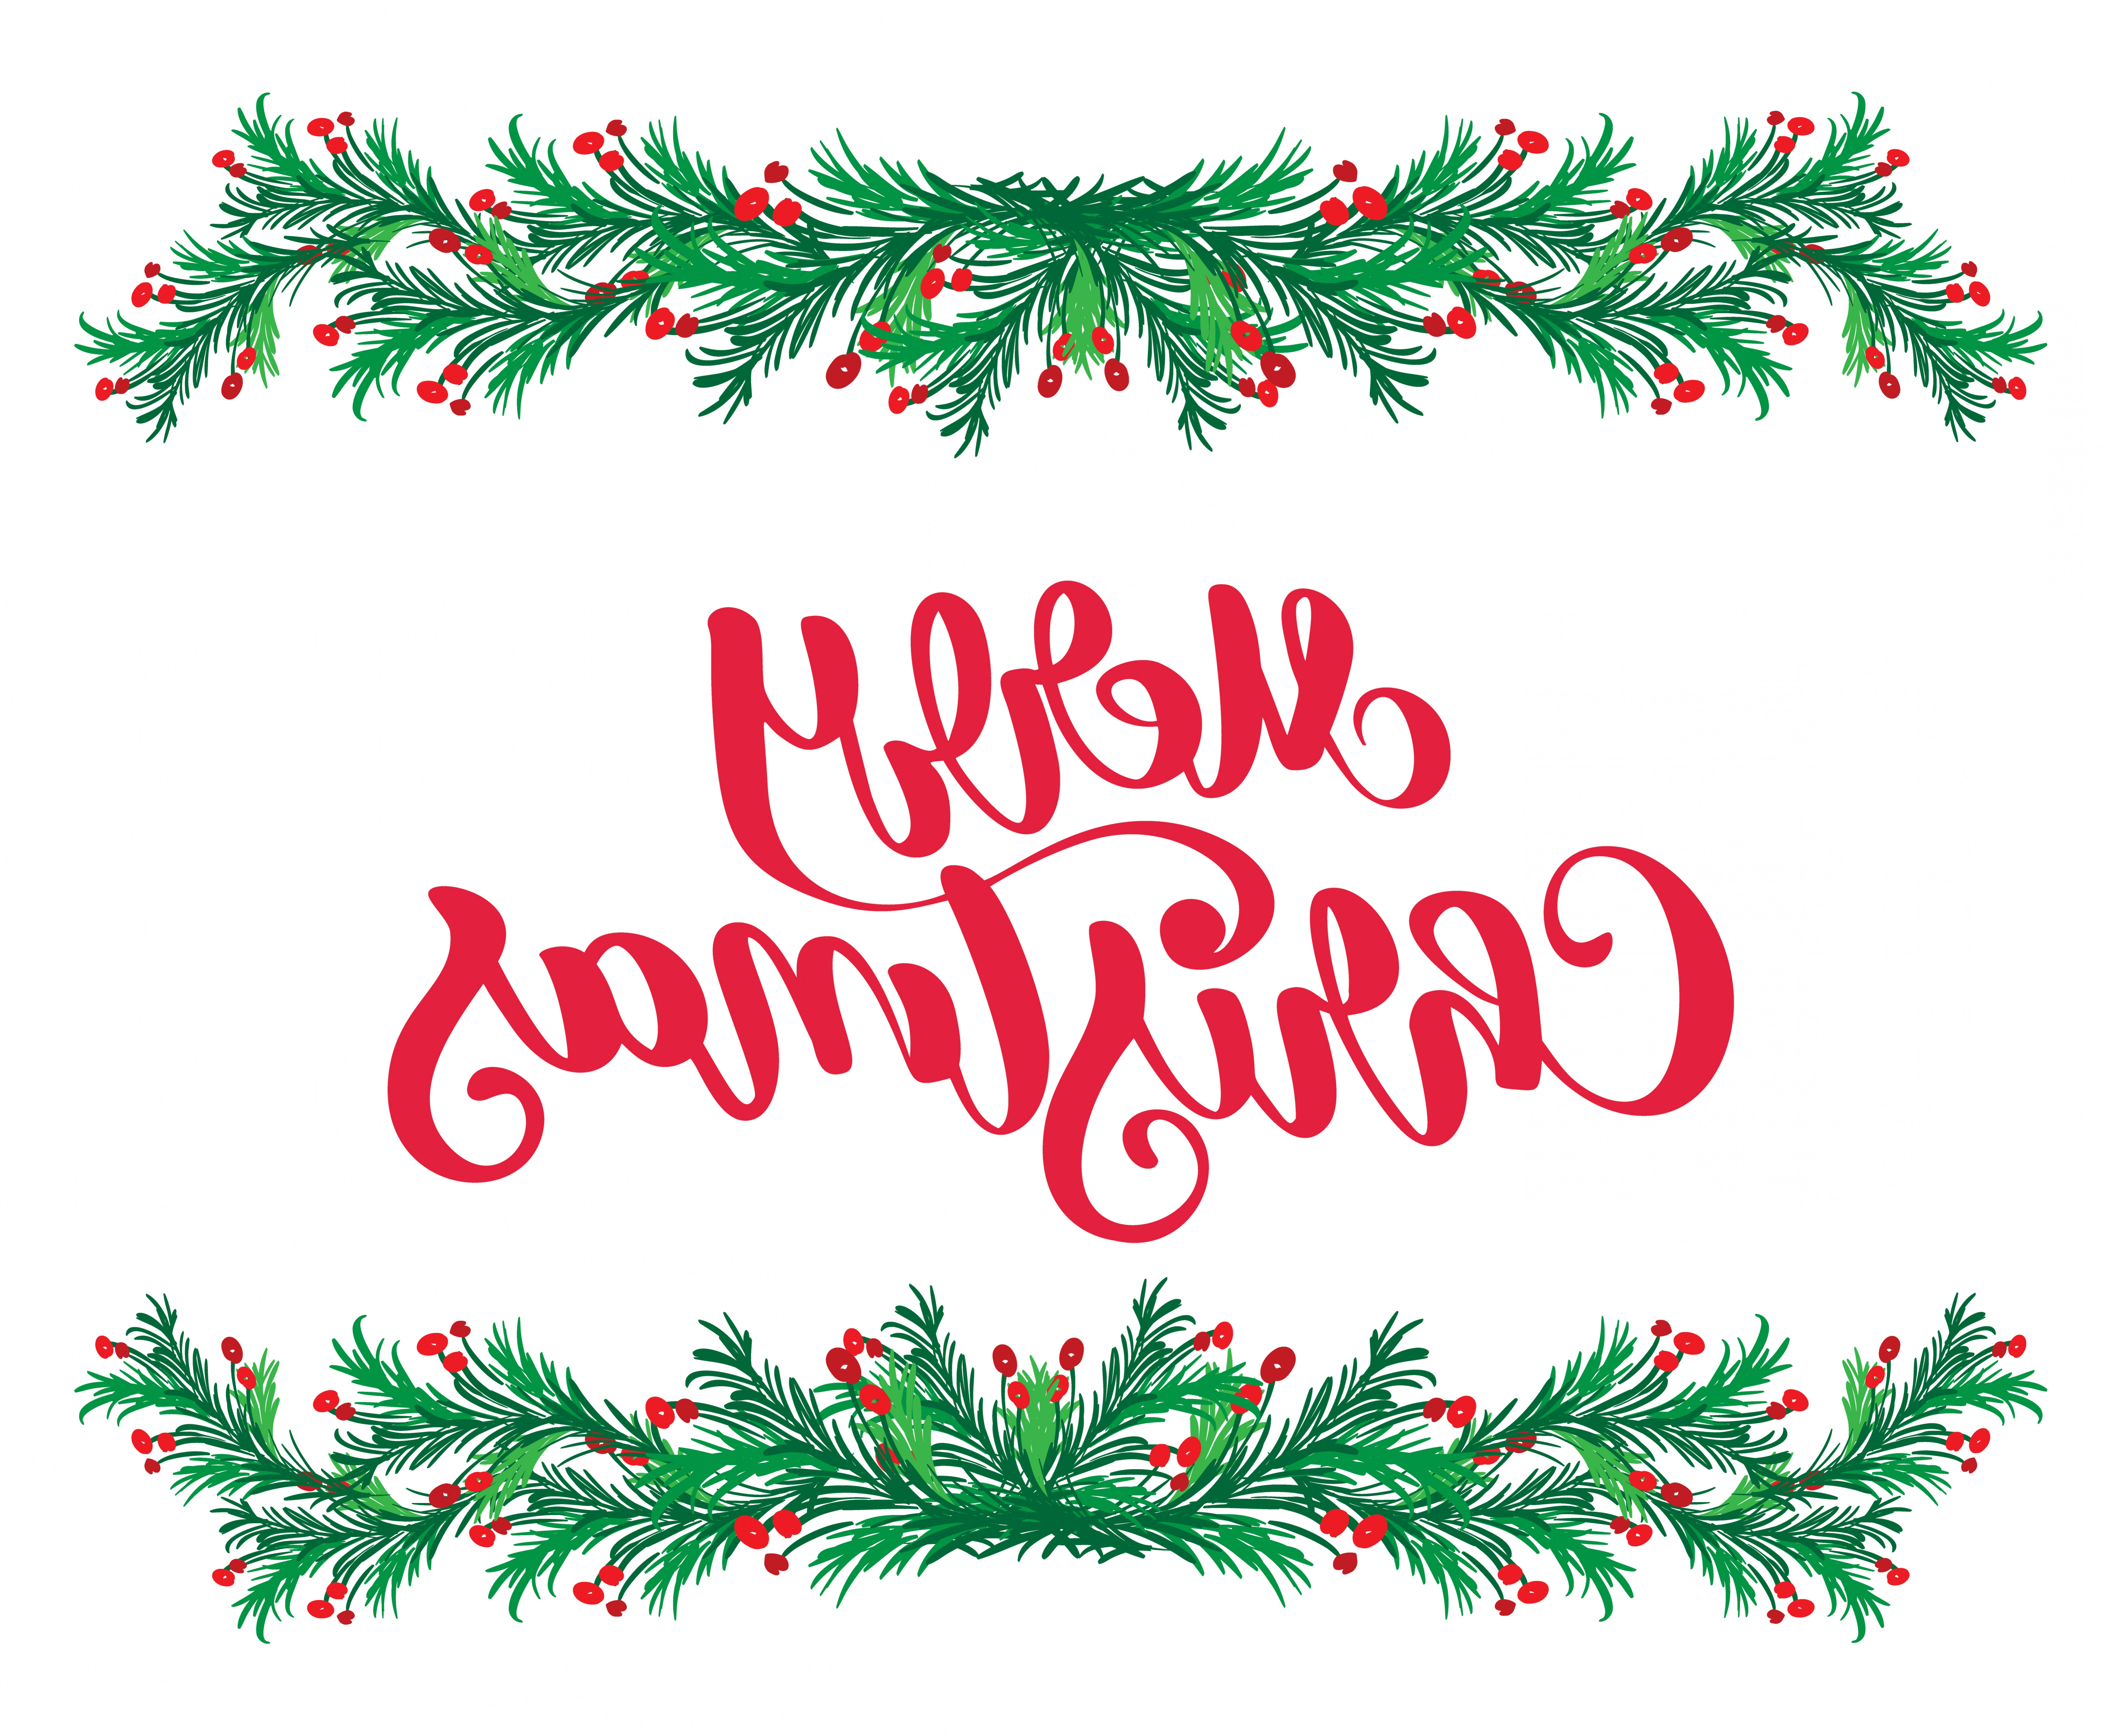 Vector Flourish Christmas: Merry Christmas Red Calligraphy Lettering Text And Vintage Flourish Green Fir Tree Branches Frame Vector Illustration